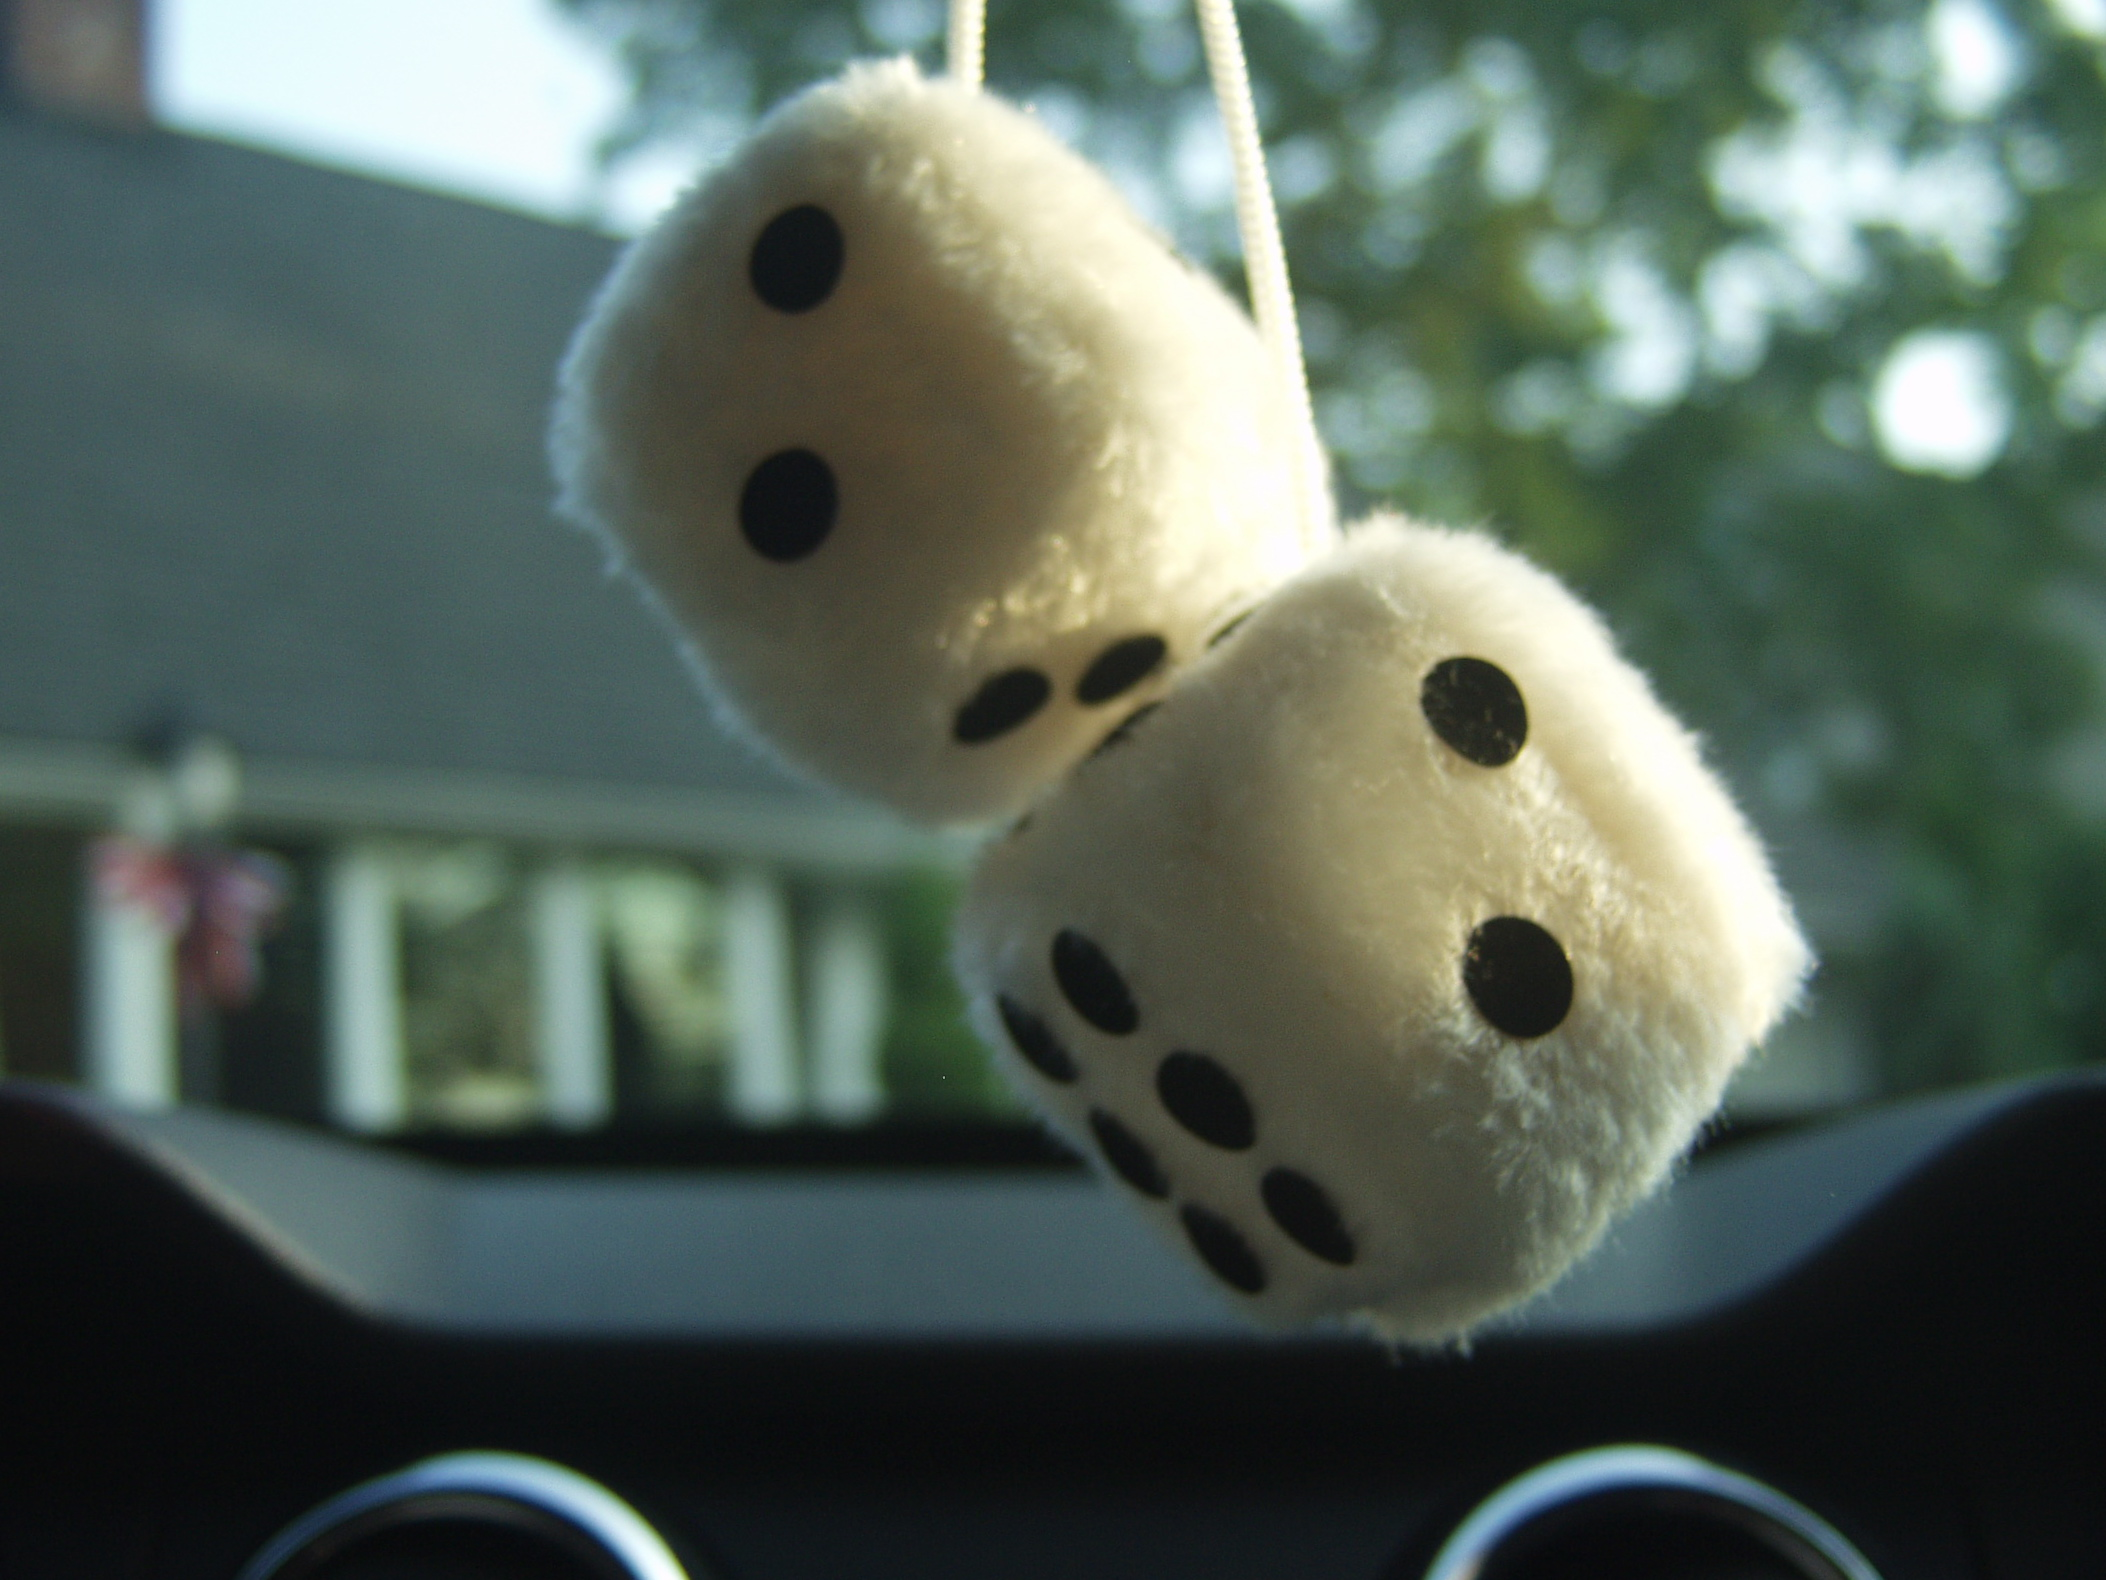 Dice on rearview mirror